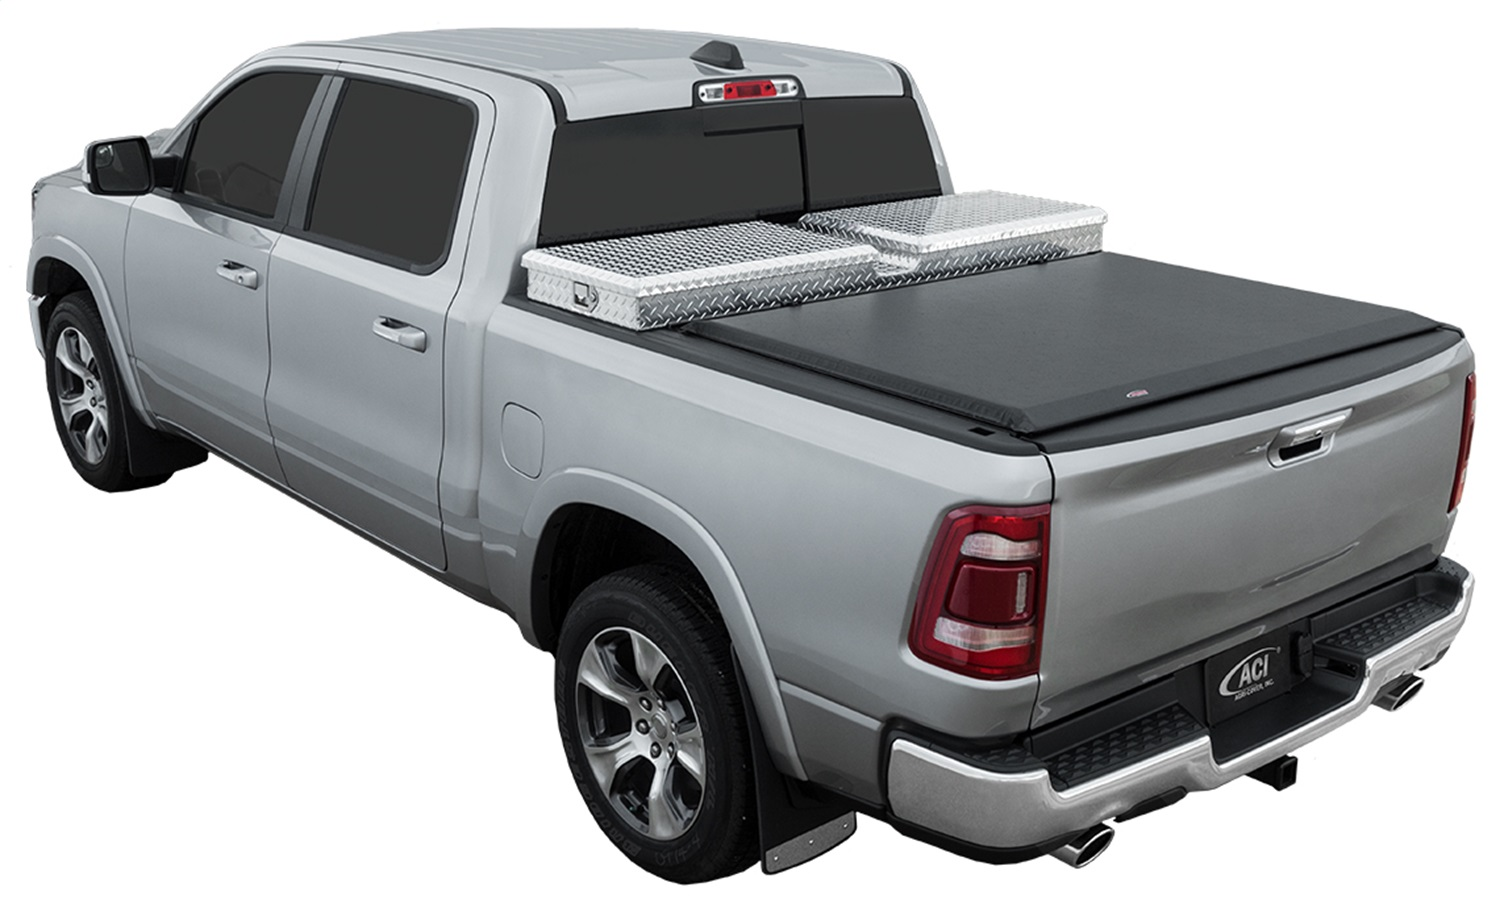 Access Cover 64239 ACCESS Toolbox Edition Roll-Up Cover Fits 19-20 1500